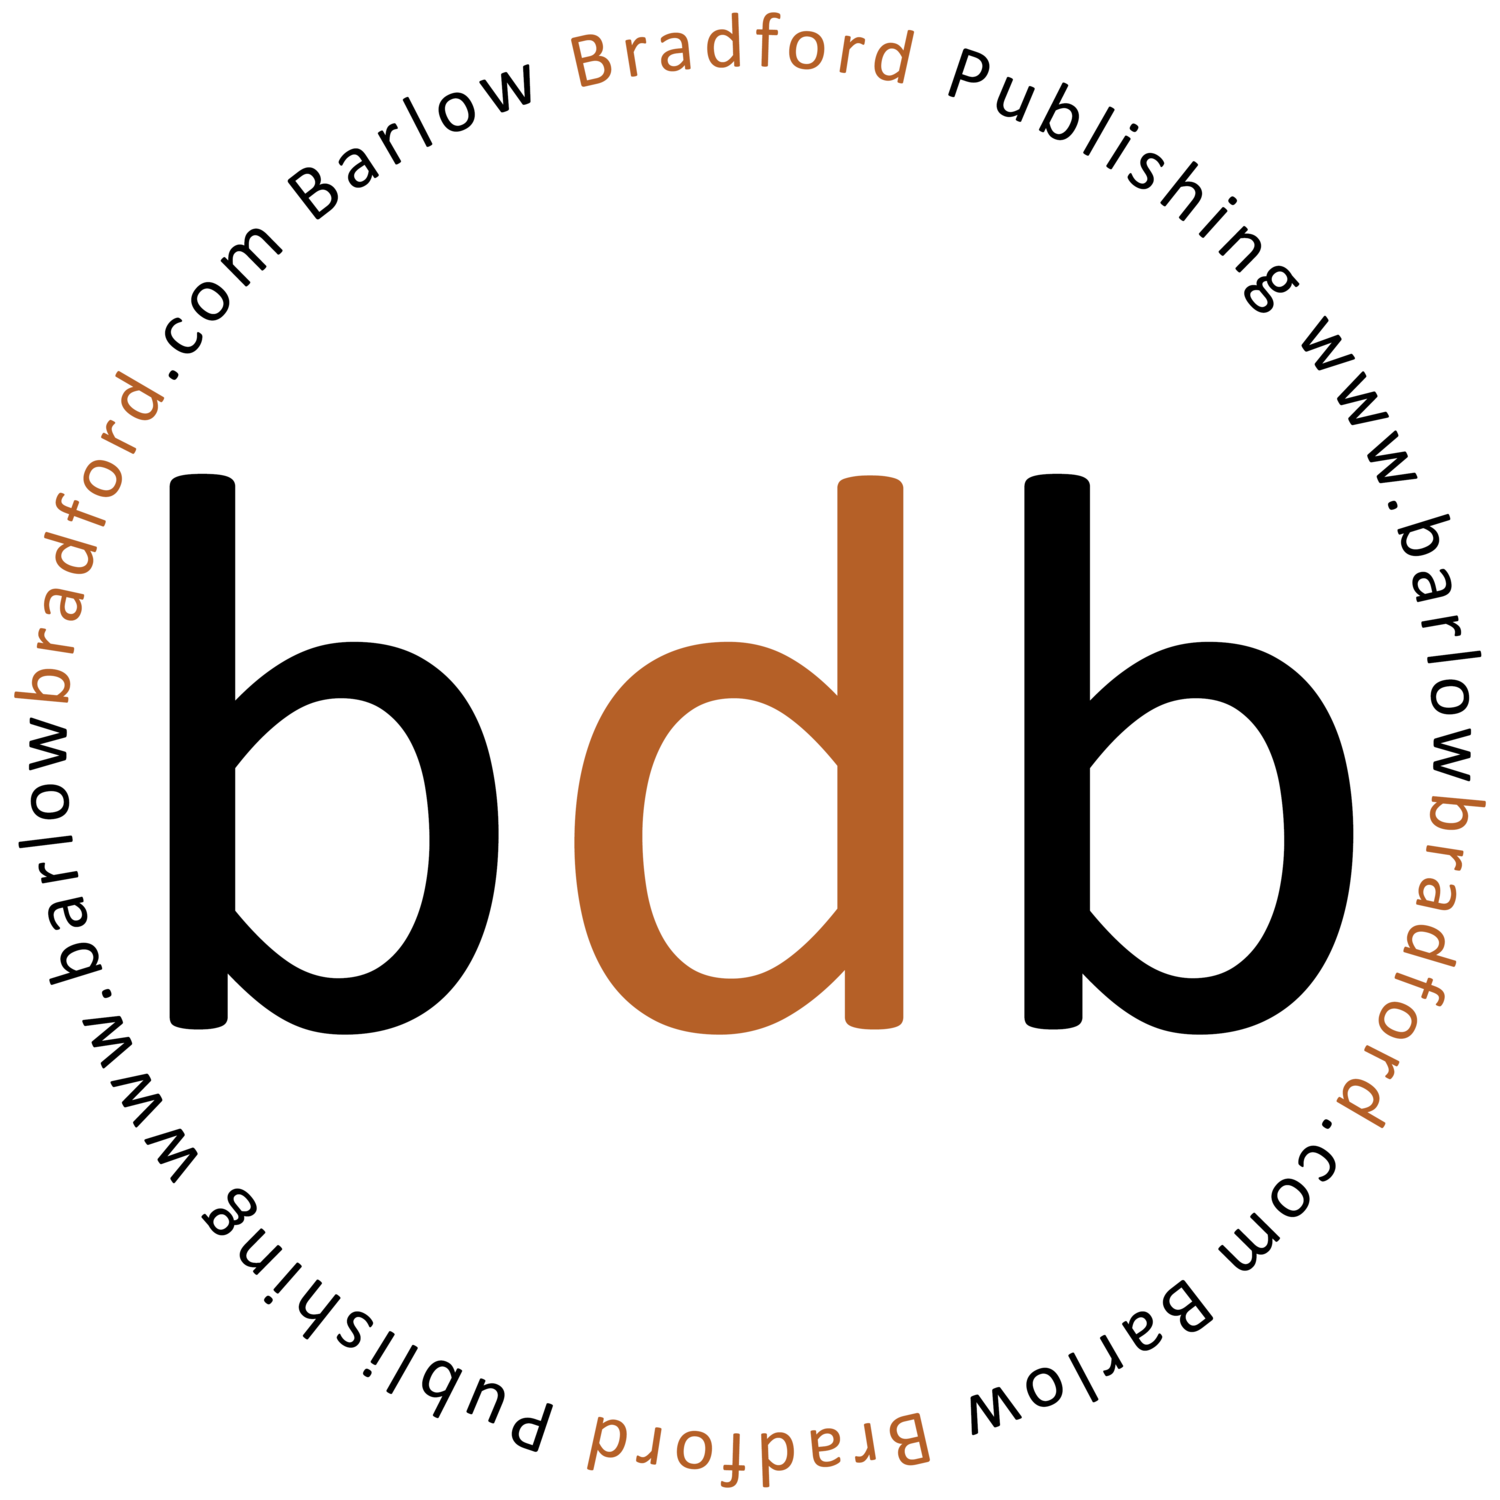 Barlow Bradford Publishing